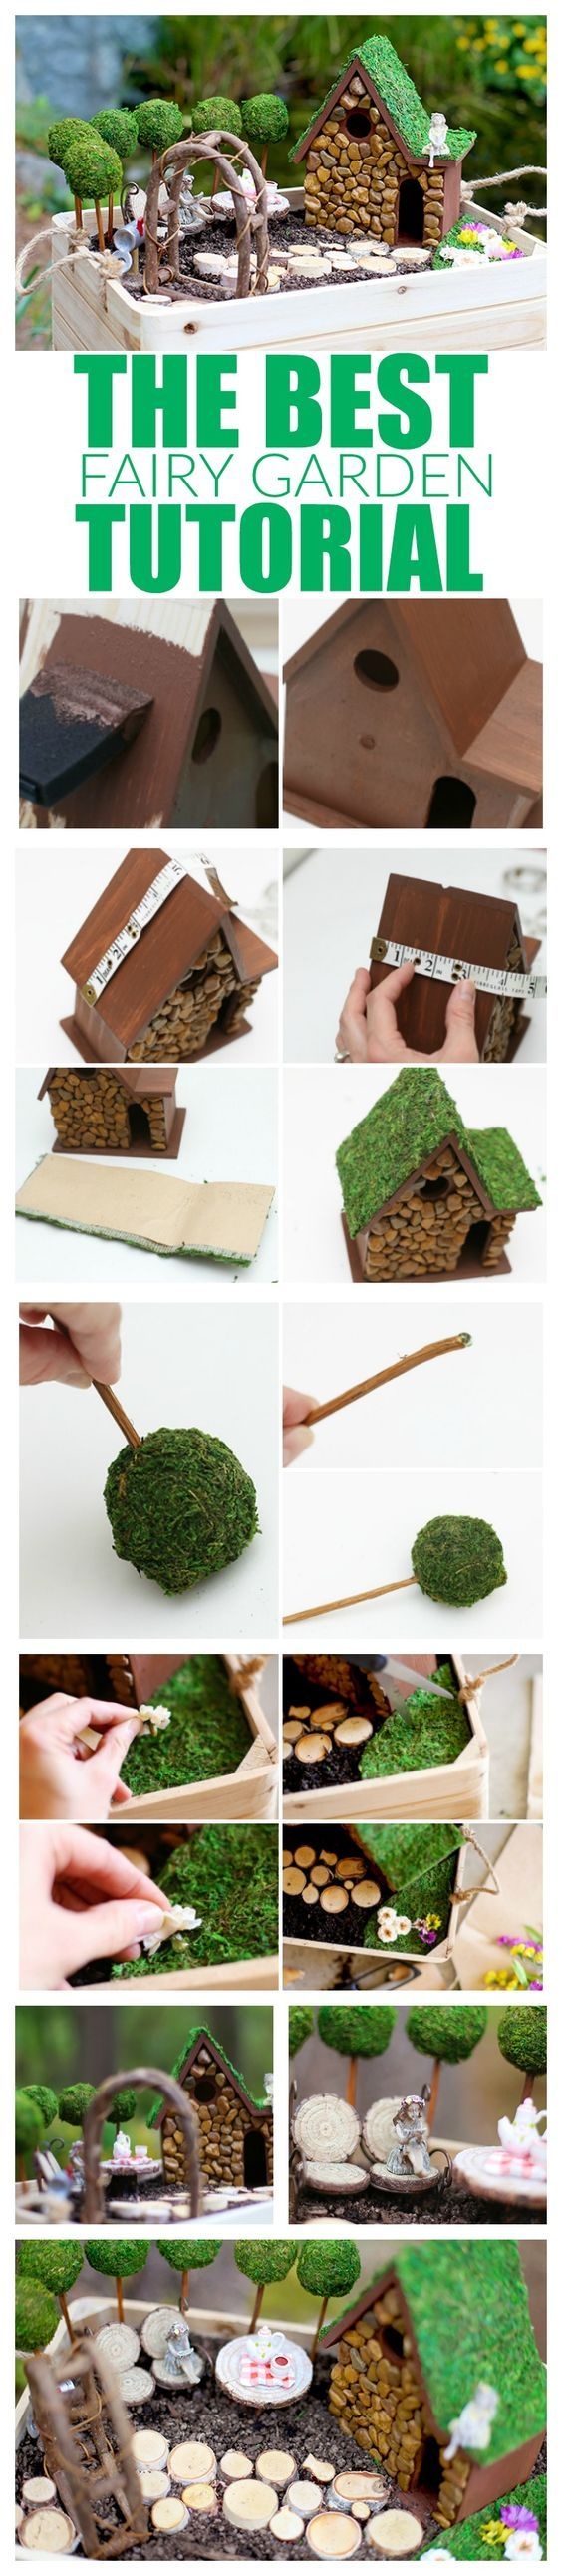 Fairy Garden Ideas The Cutest Collection | The WHOot | Craft Ideas ...